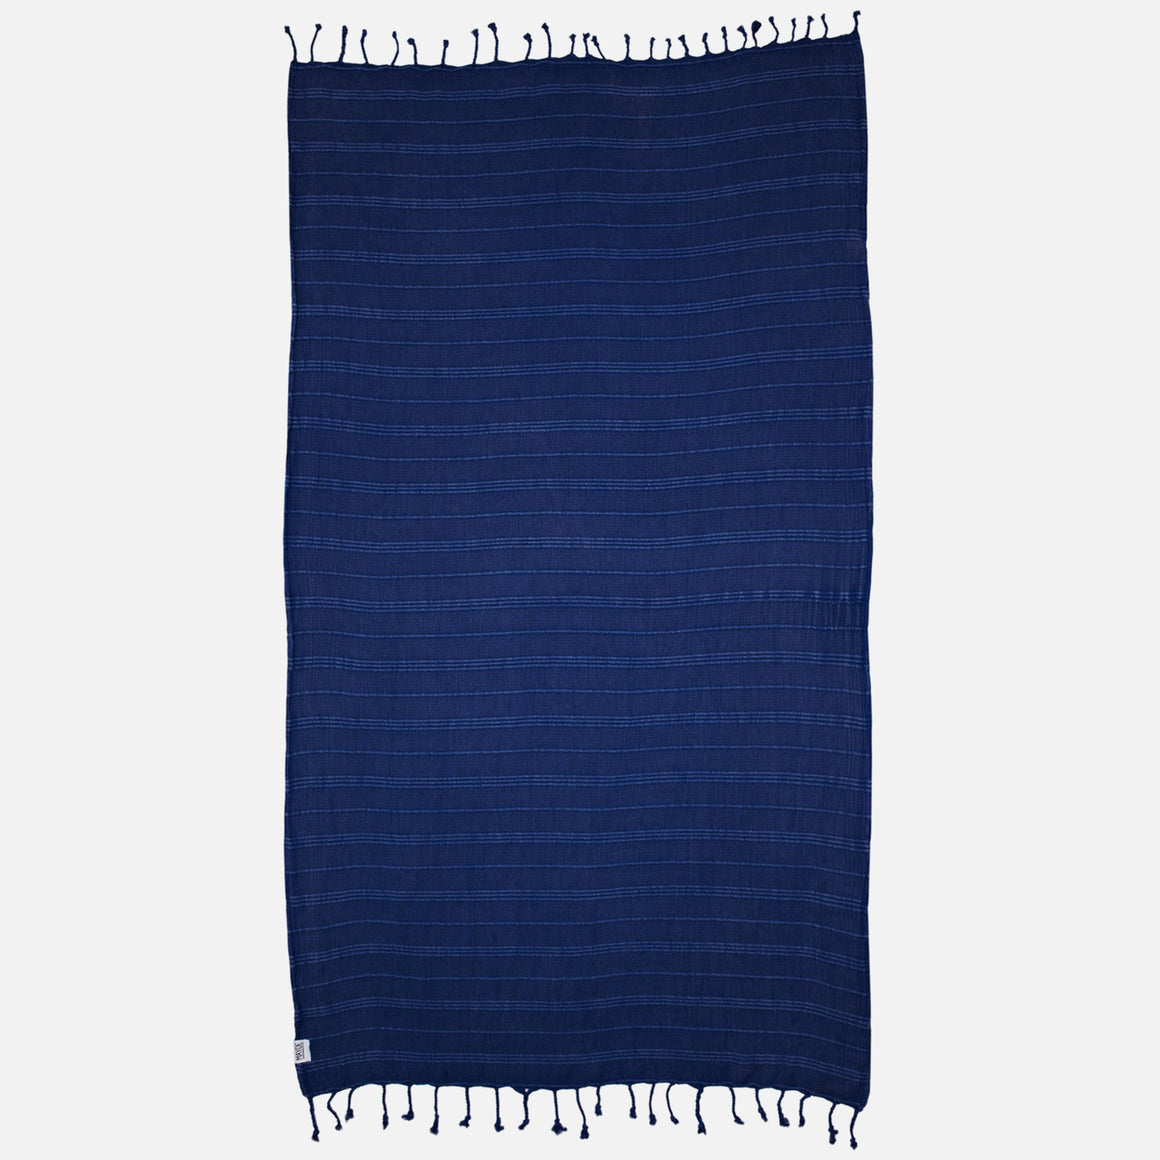 Avalon Towel - Denim